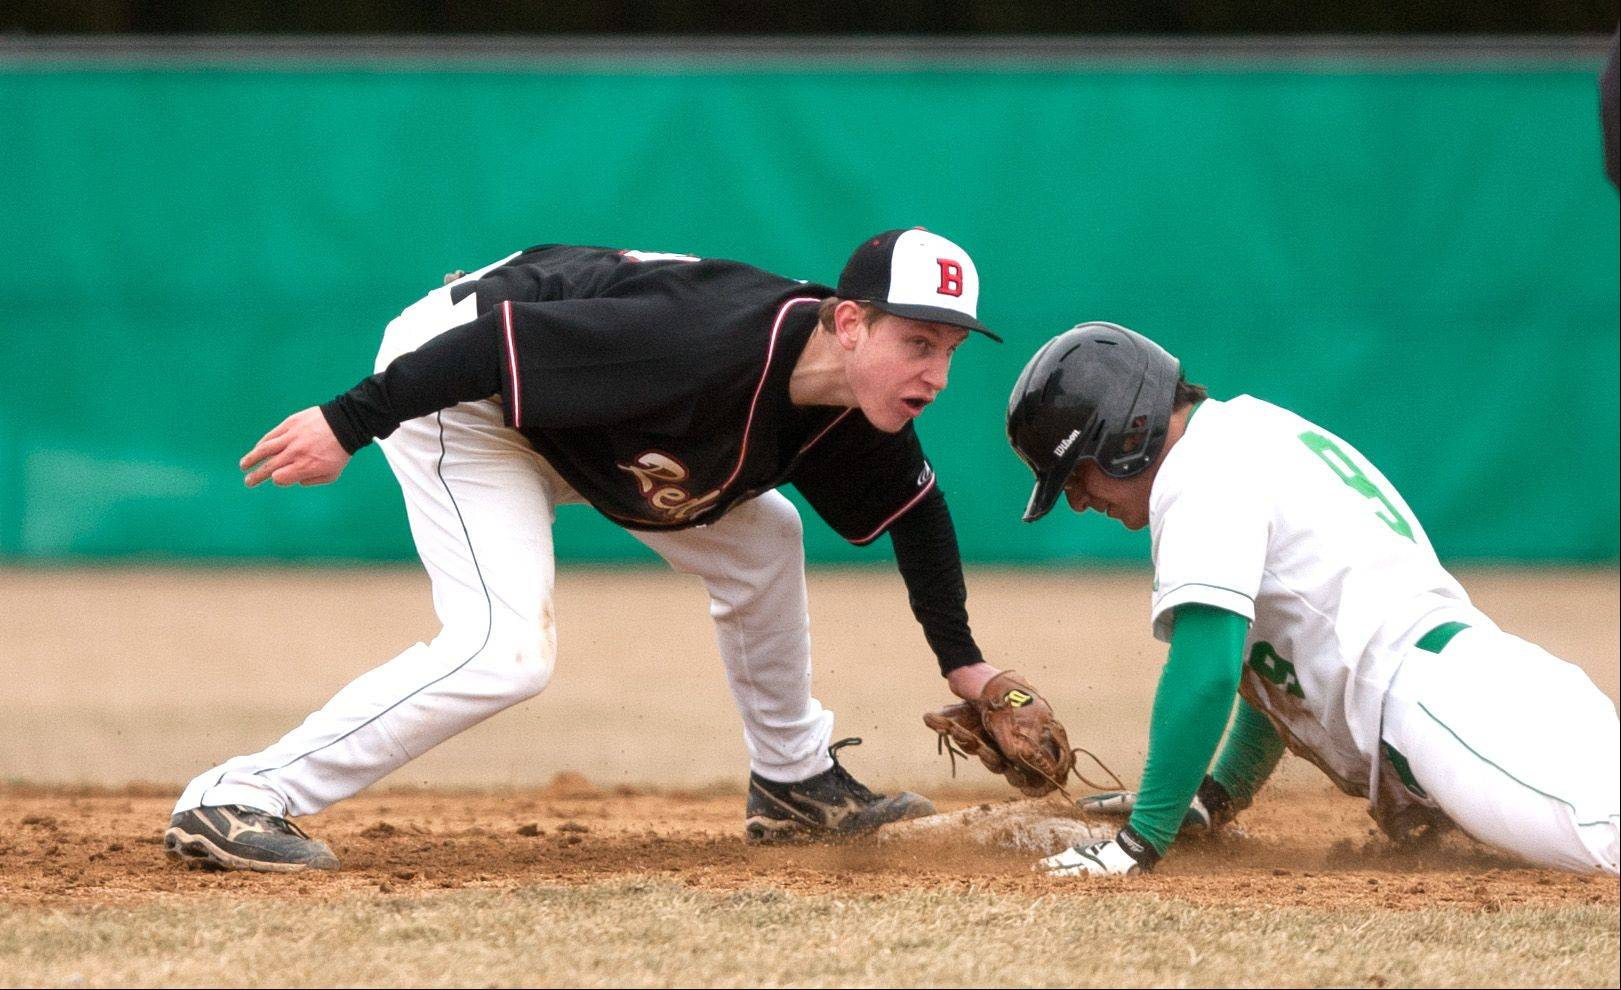 York's Louis Alcaraz slides safely under a Benet tag, during baseball action in Elmhurst.